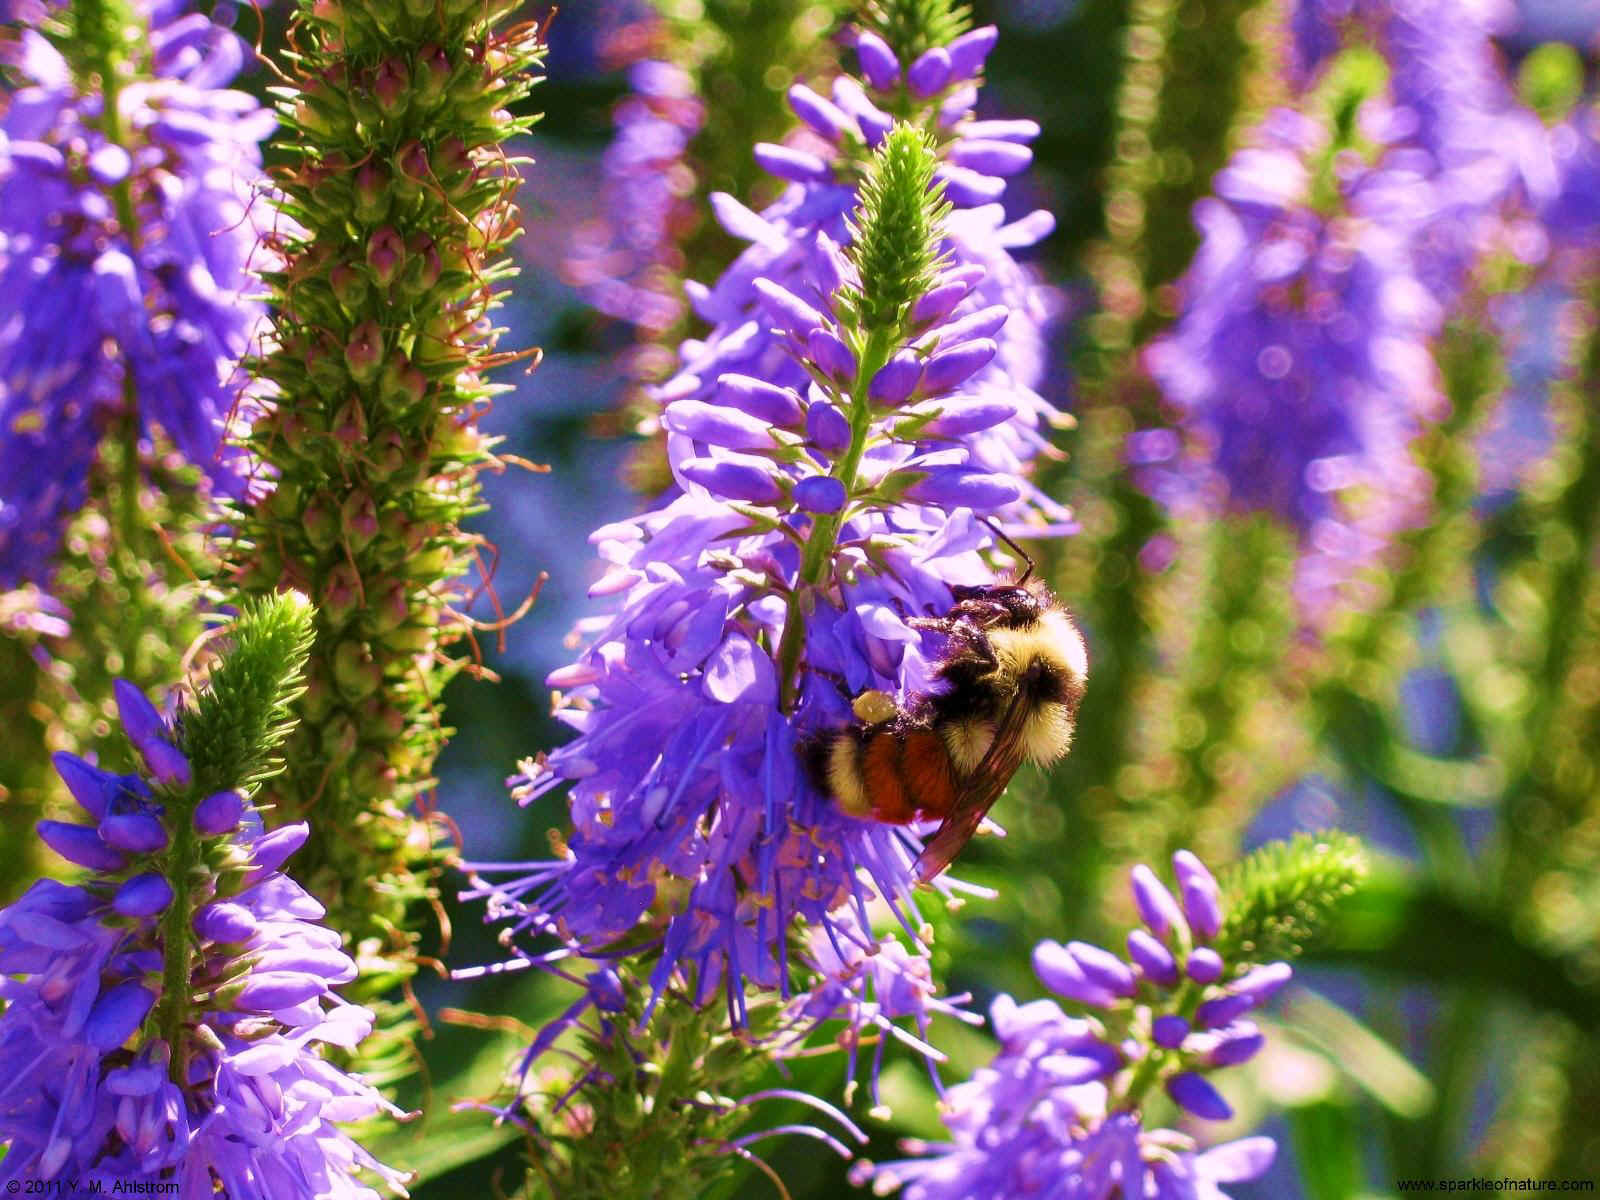 29836 bee on flowers 1600x1200.jpg (311820 bytes)